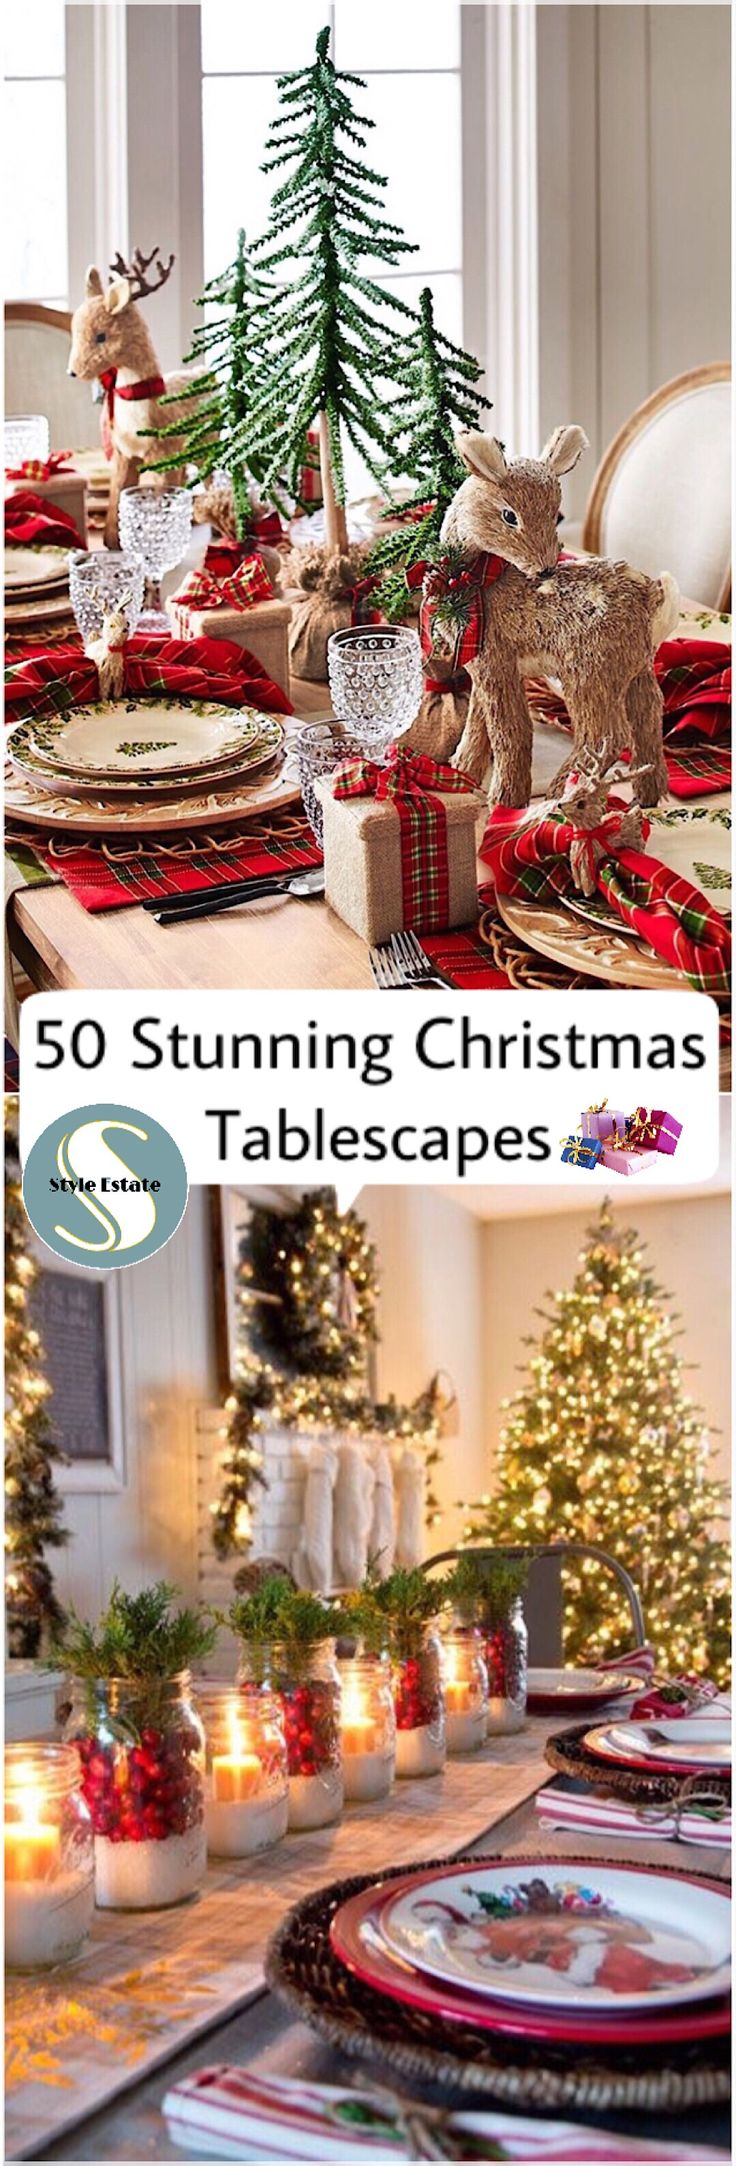 Awesome Holiday Table Decoration Ideas Part - 2: 50 Stunning Christmas Tablescapes